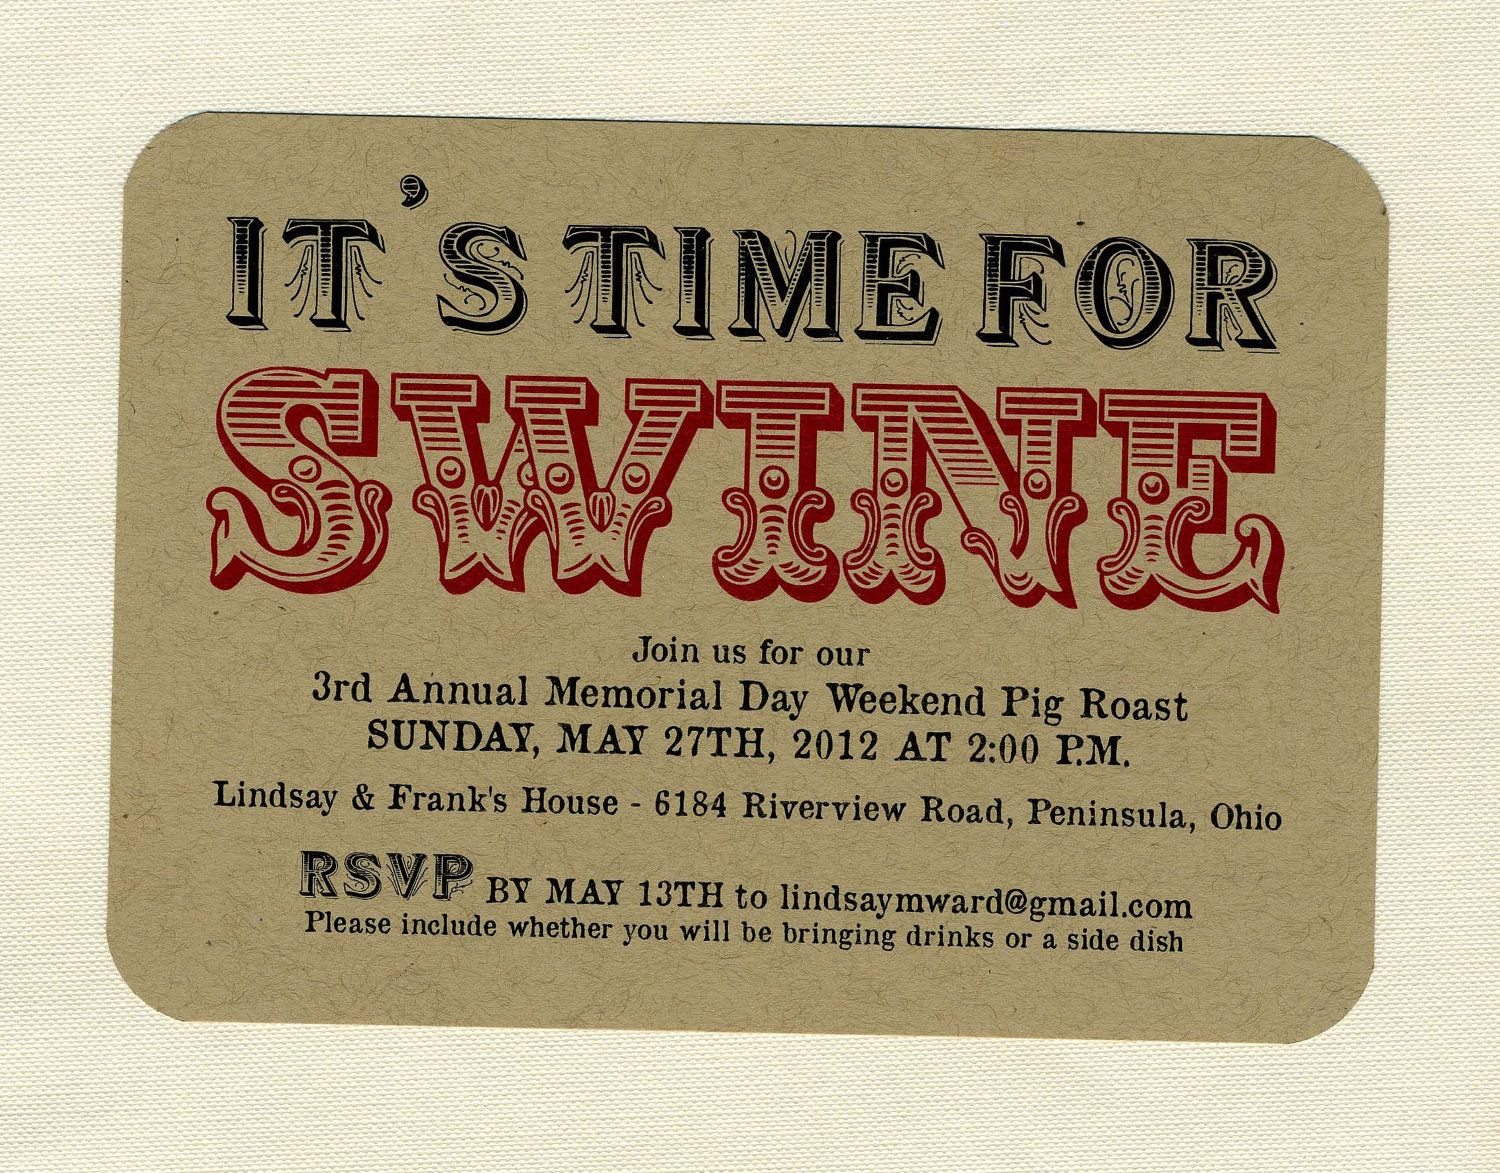 bbq or pig roast invite pig party pig roast pinterest pig